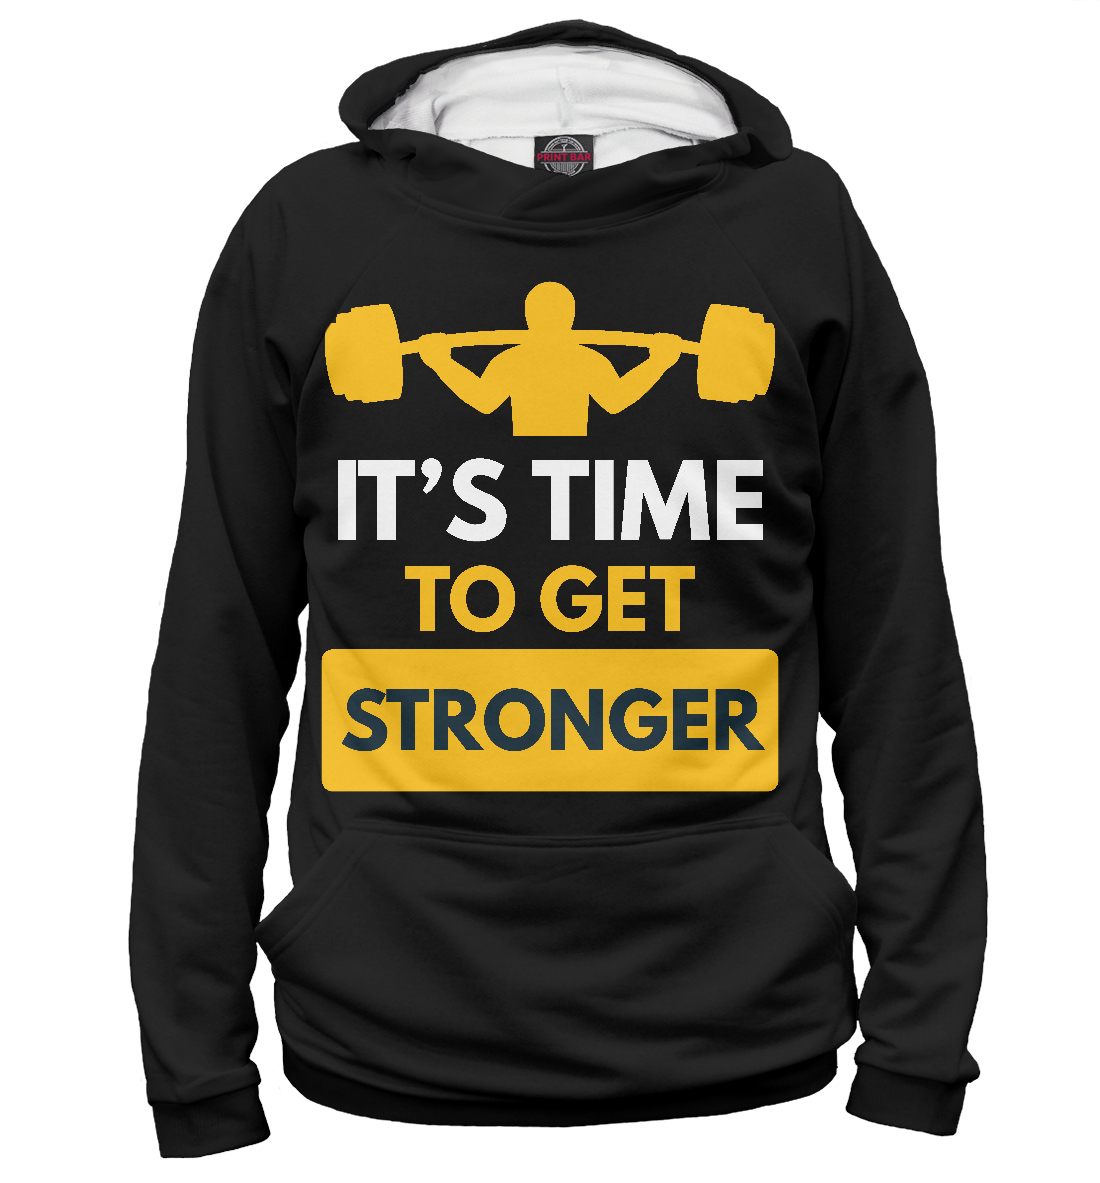 It's time to get stronger